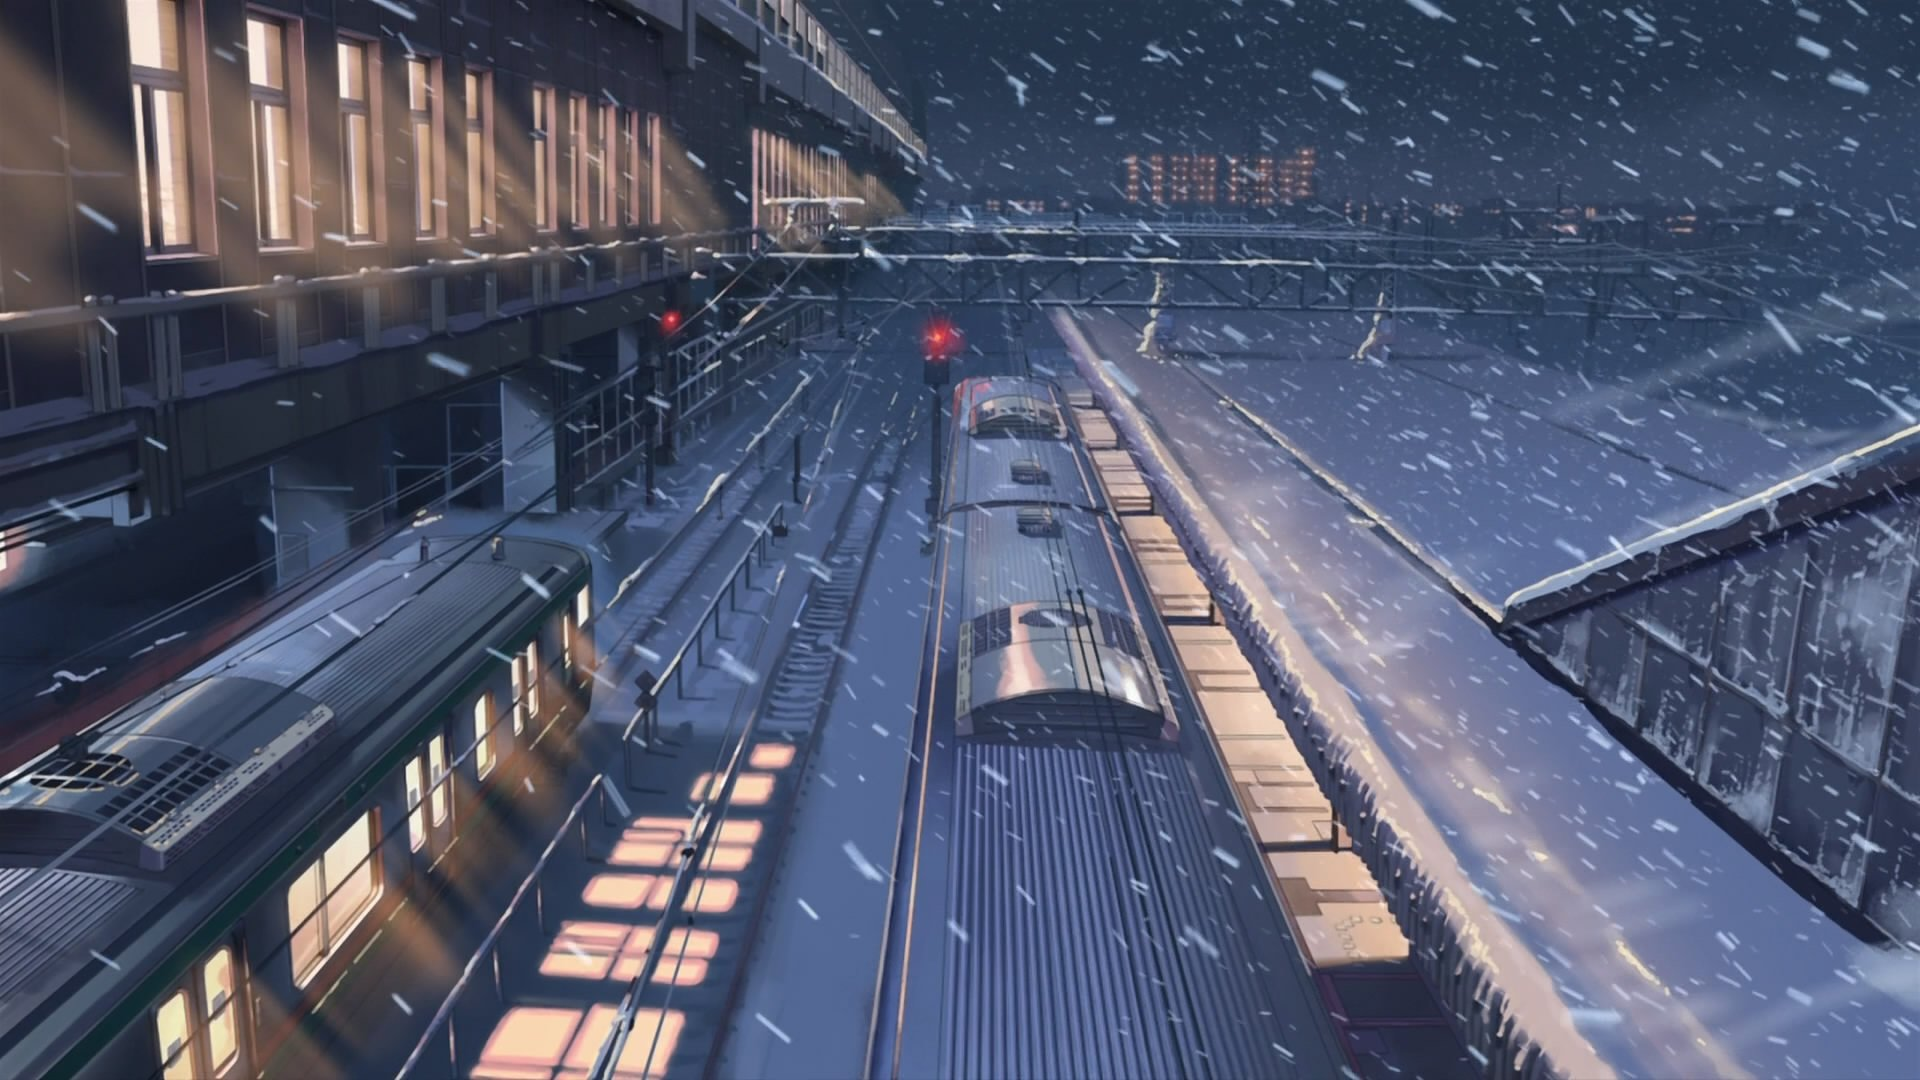 Anime  train station in winter